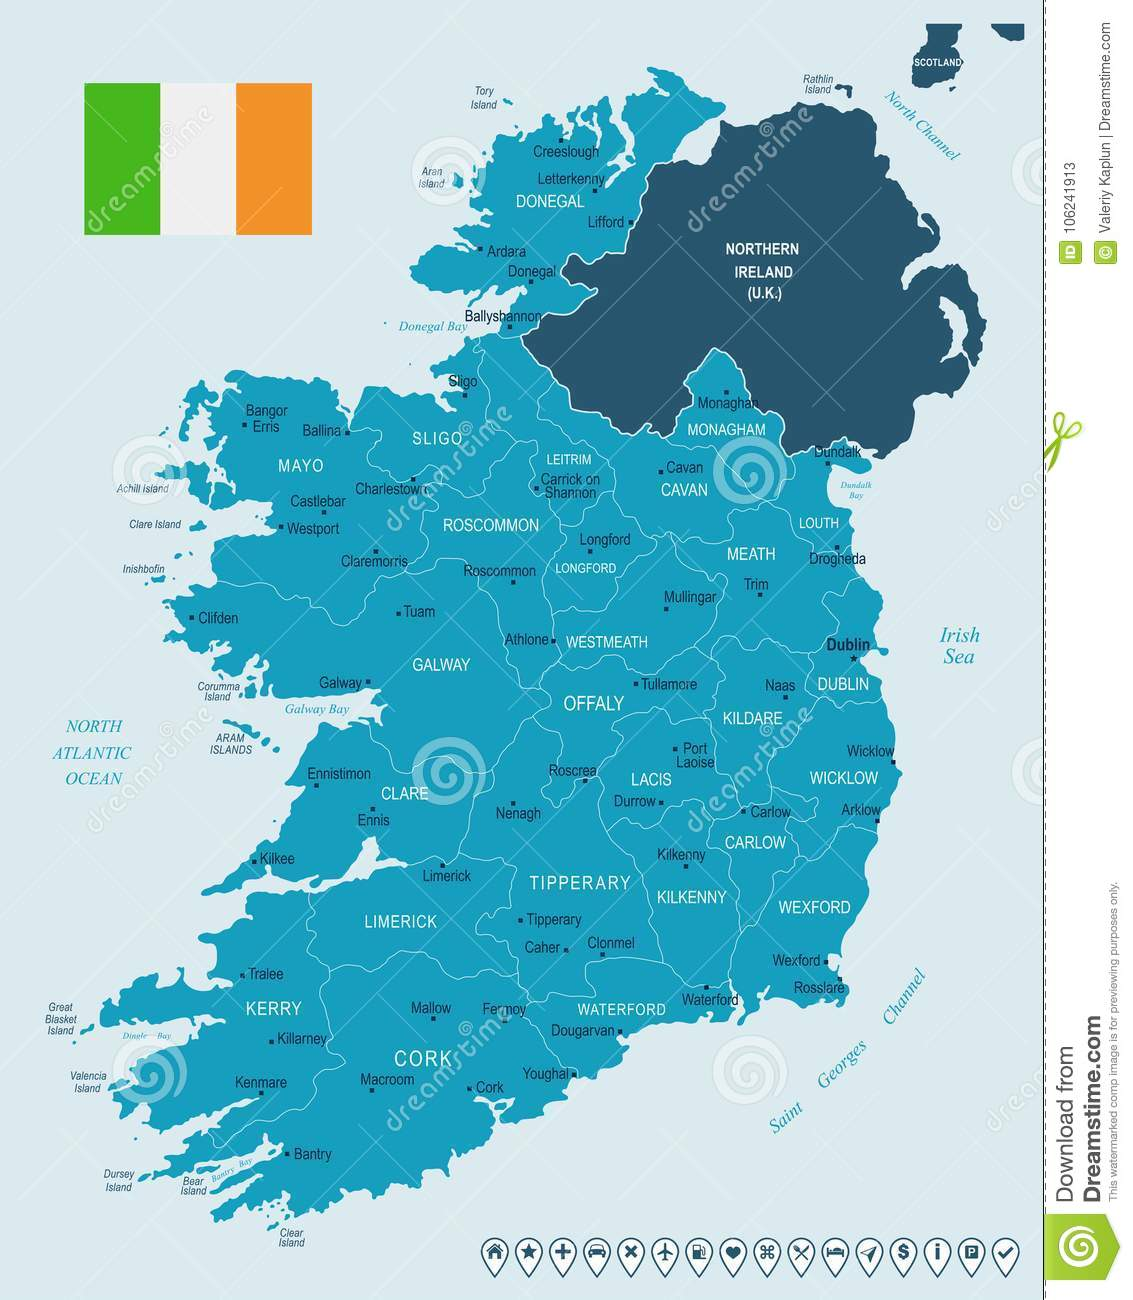 Cities In Ireland Map.Ireland Map And Flag Detailed Vector Illustration Stock